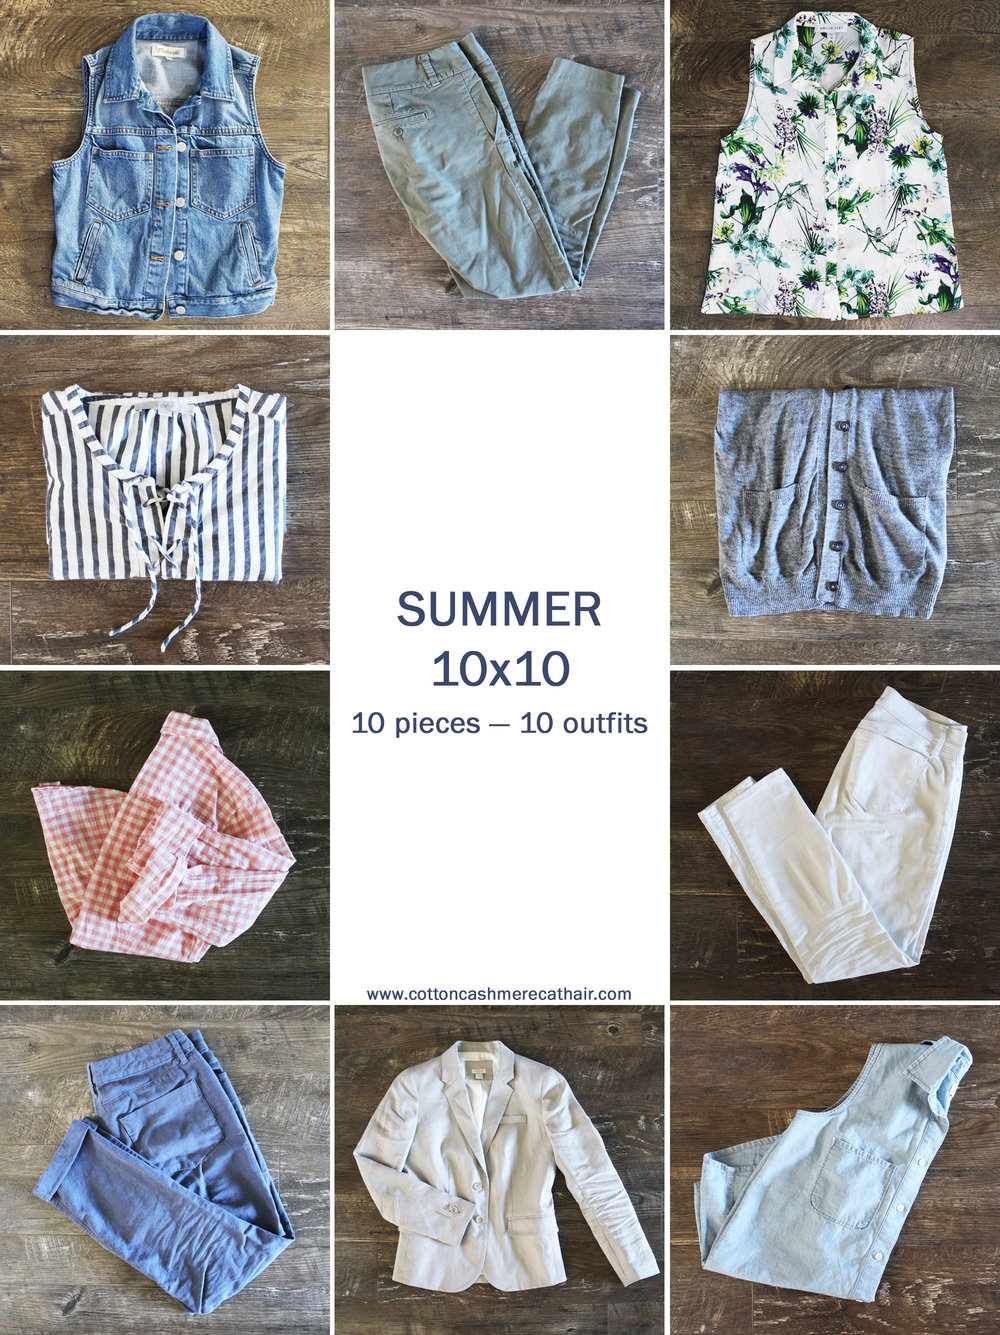 Summer 10x10: 10 pieces, 10 outfits, 10 days — Cotton Cashmere Cat Hair